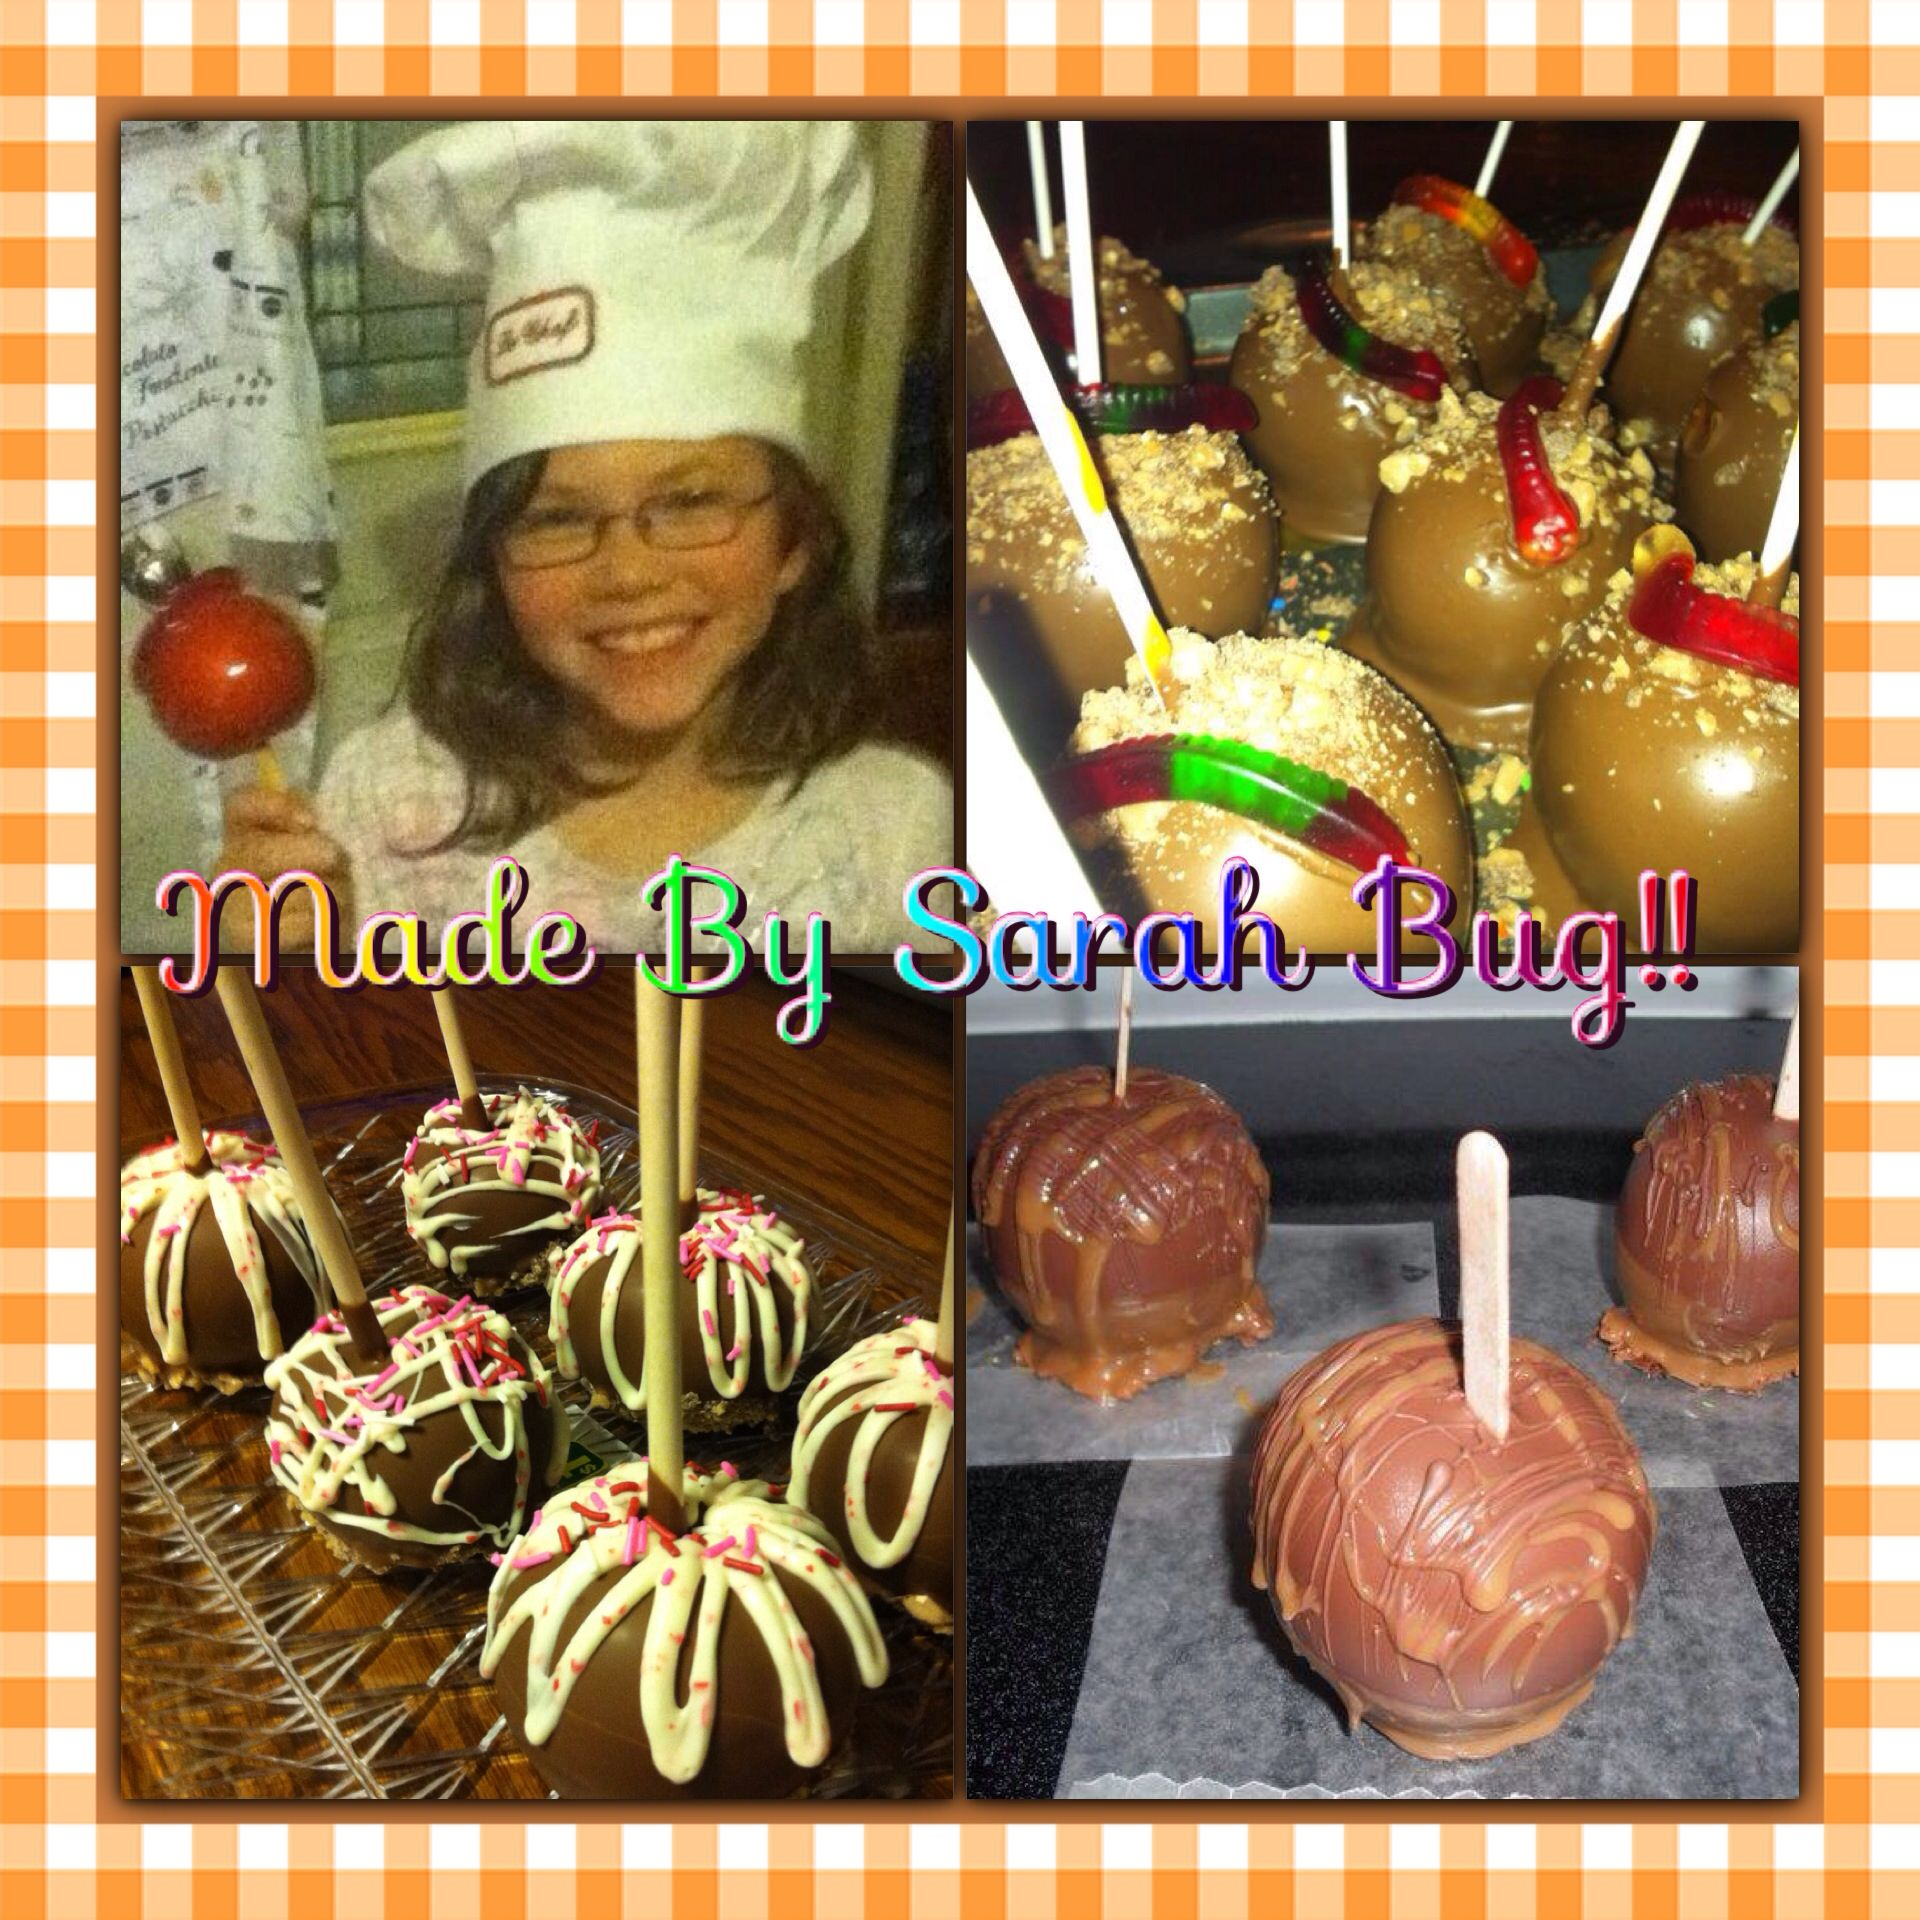 Candy, cameral, chocolate apples!!! Yummy!!!